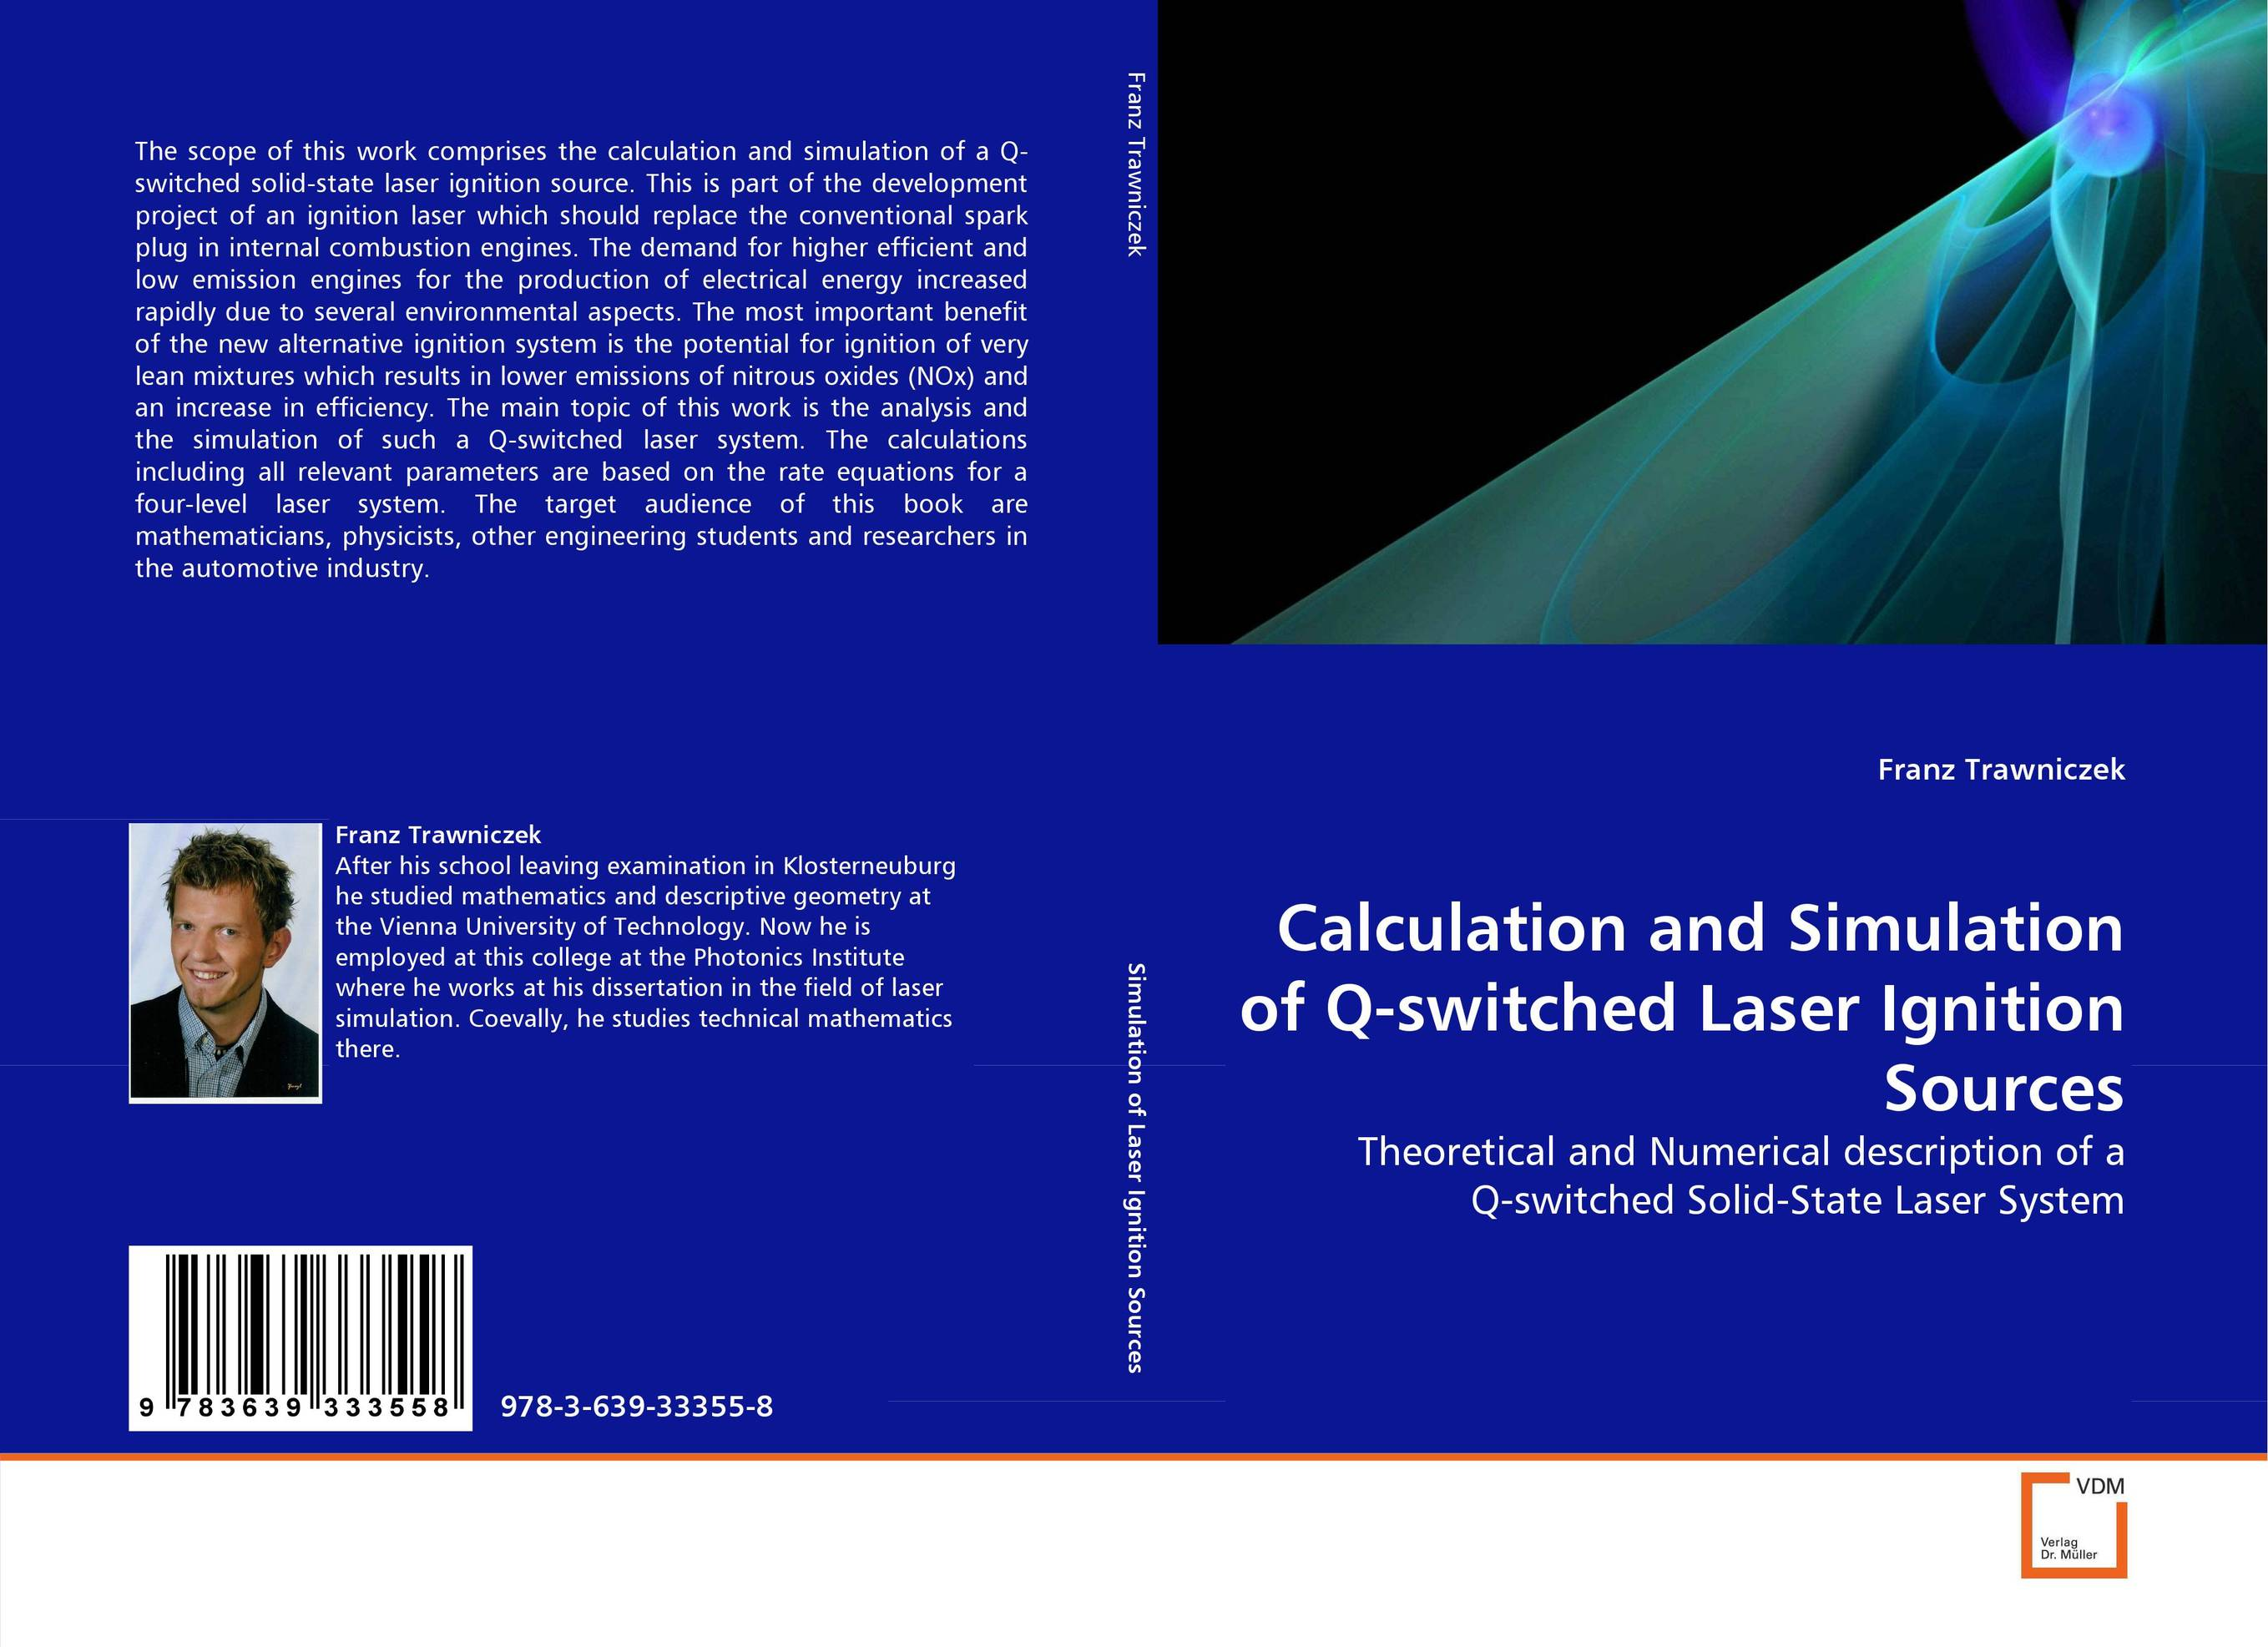 Calculation and Simulation of Q-switched Laser Ignition Sources